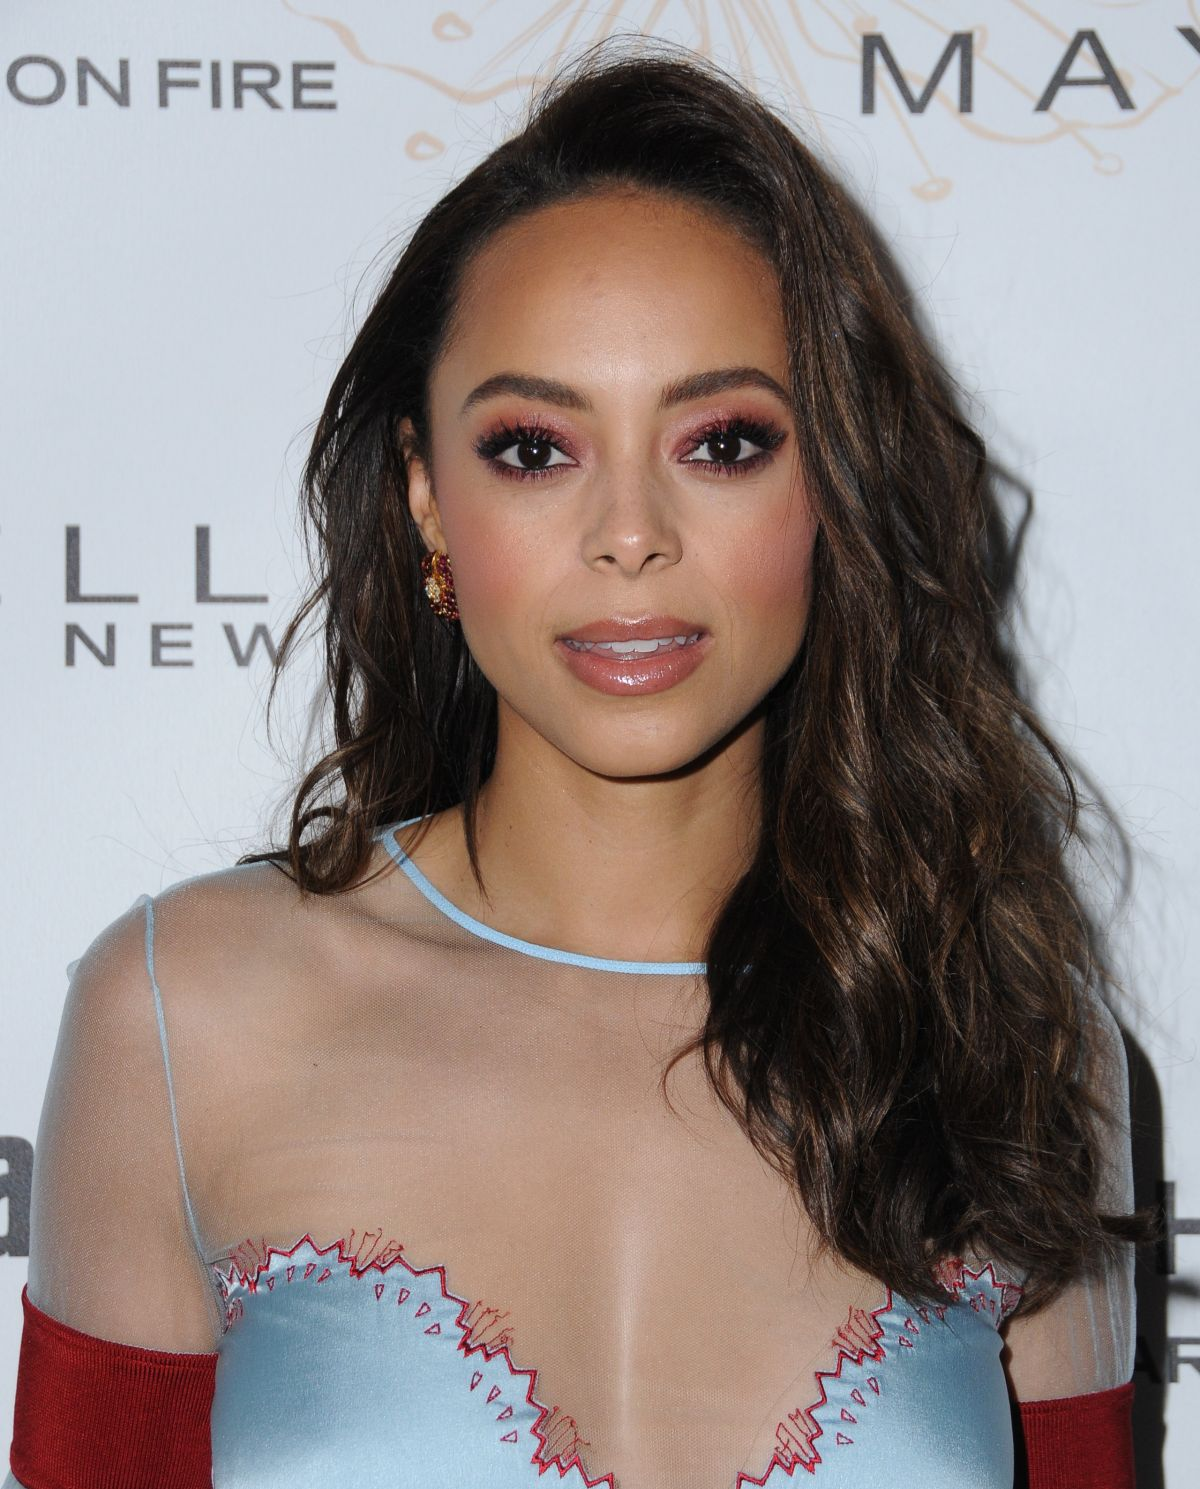 Image result for AMBER STEVENS WEST